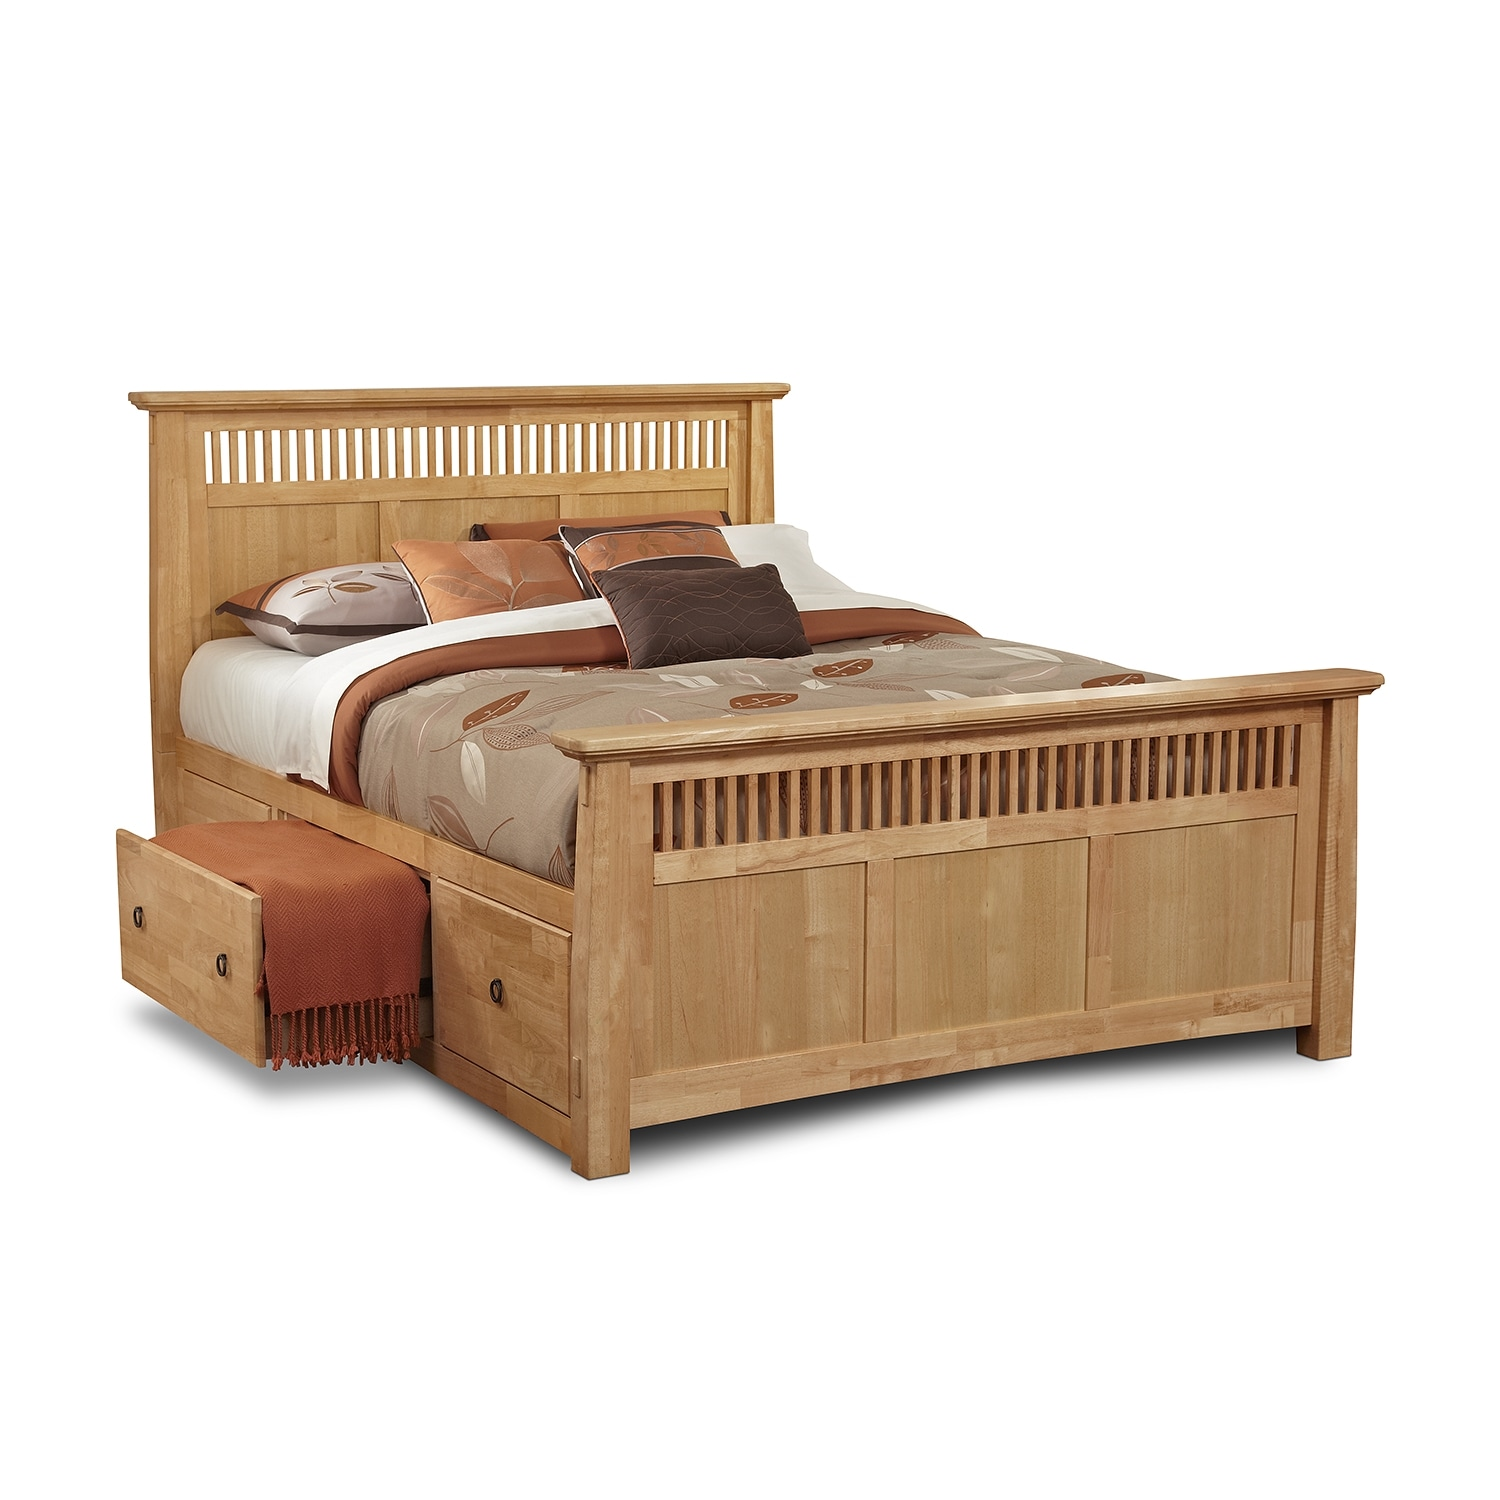 [Arts & Crafts Light Storage King Storage Bed]